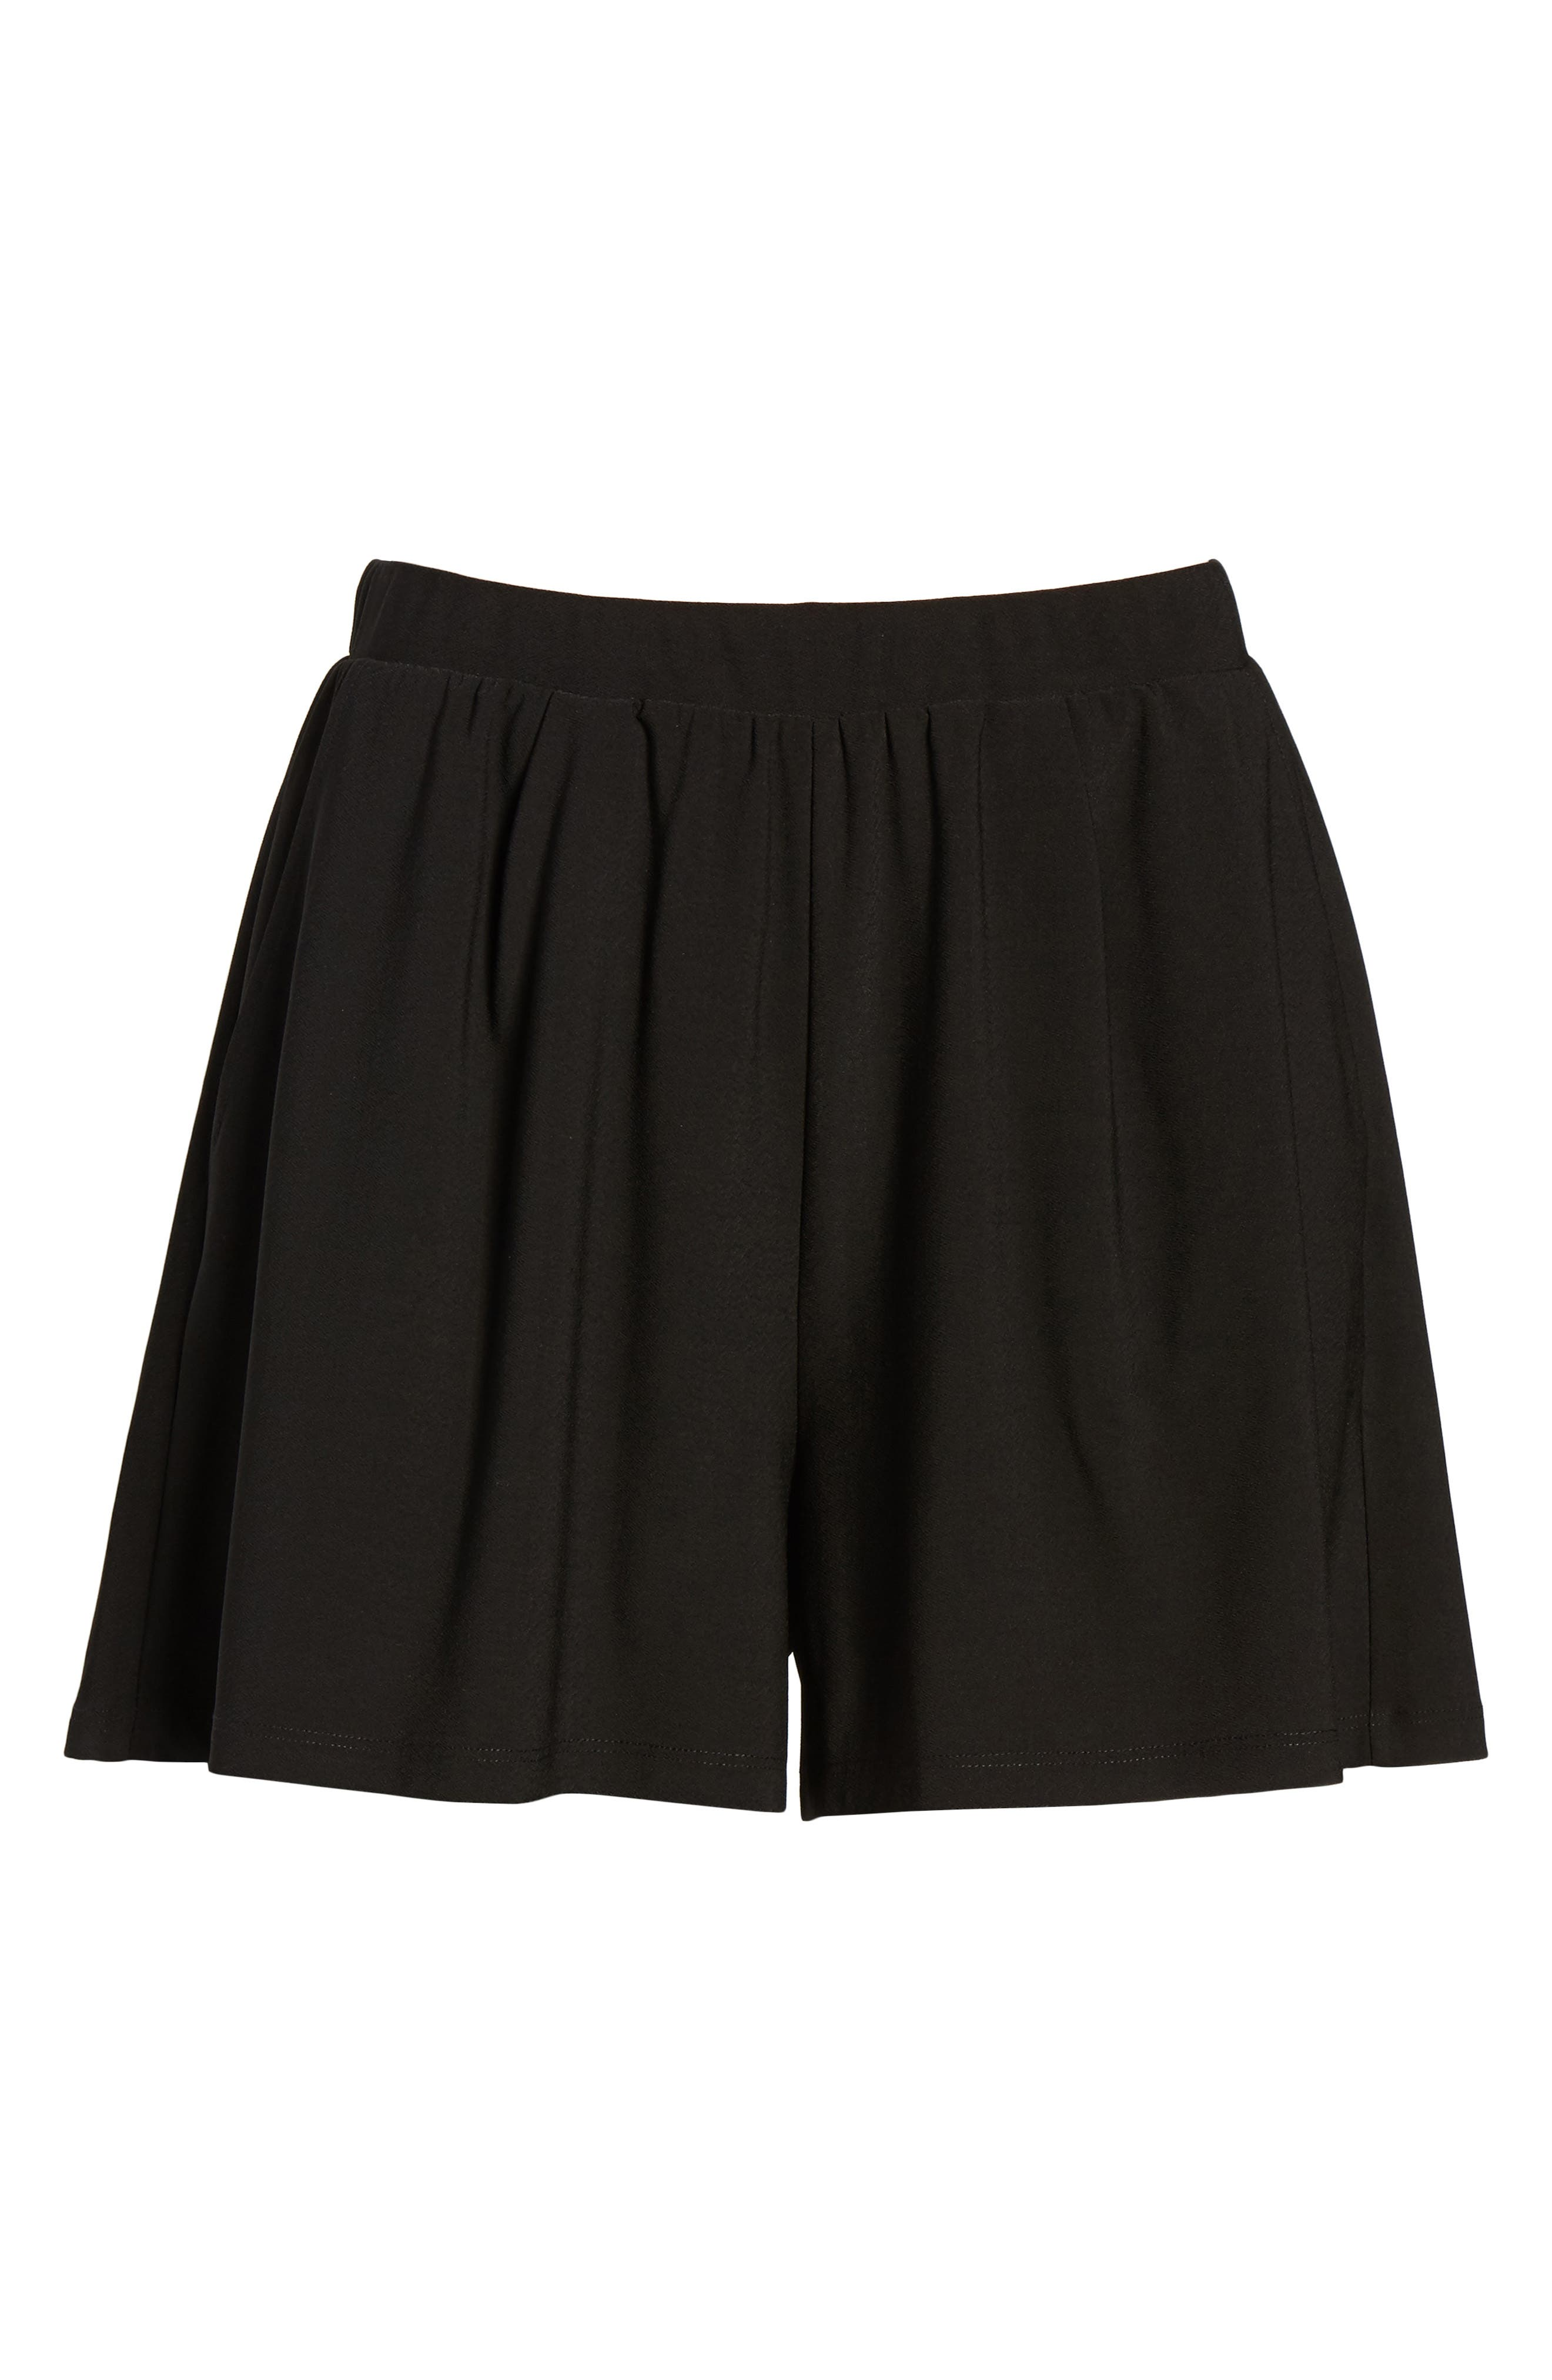 Pleat Front Shorts,                             Alternate thumbnail 6, color,                             Black